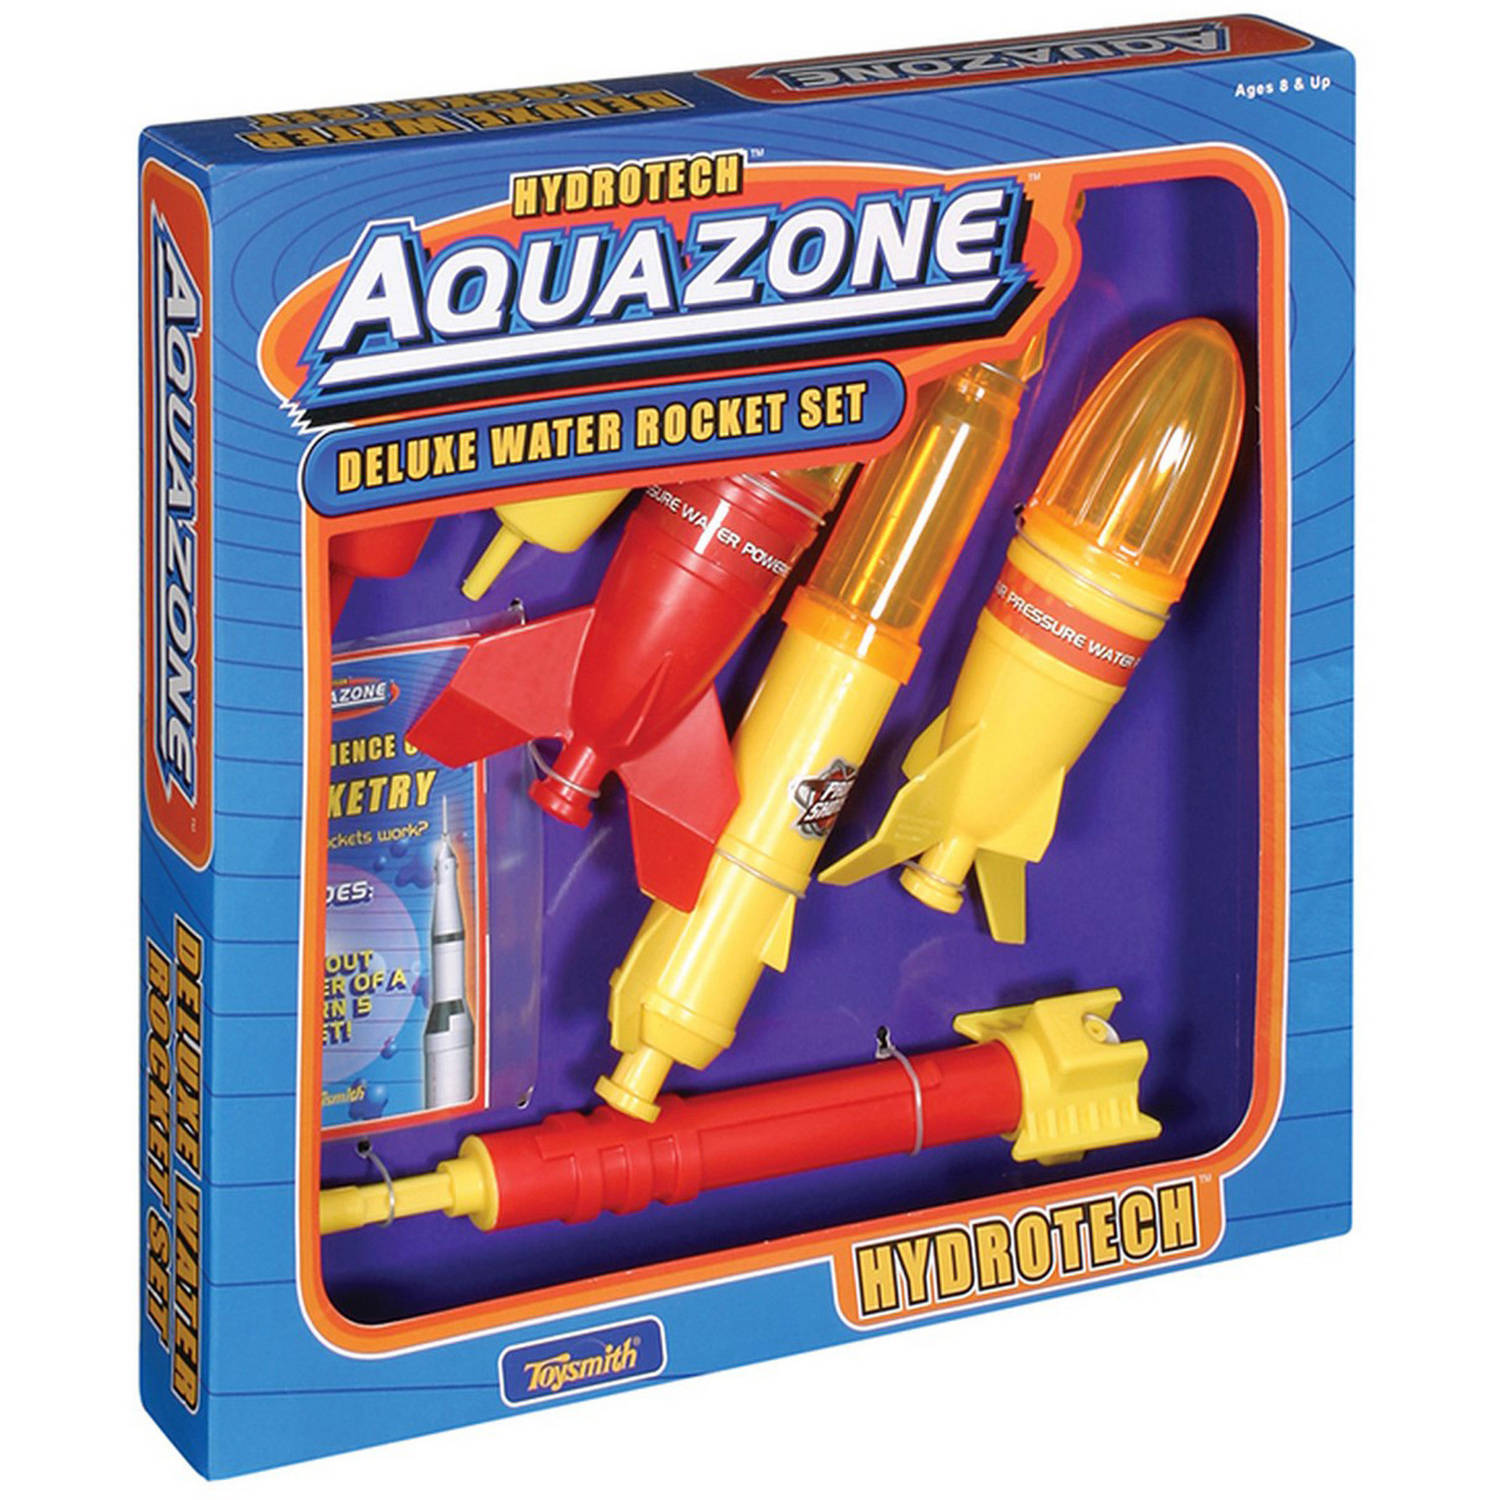 Toysmith Deluxe Water Rocket Set by Toysmith